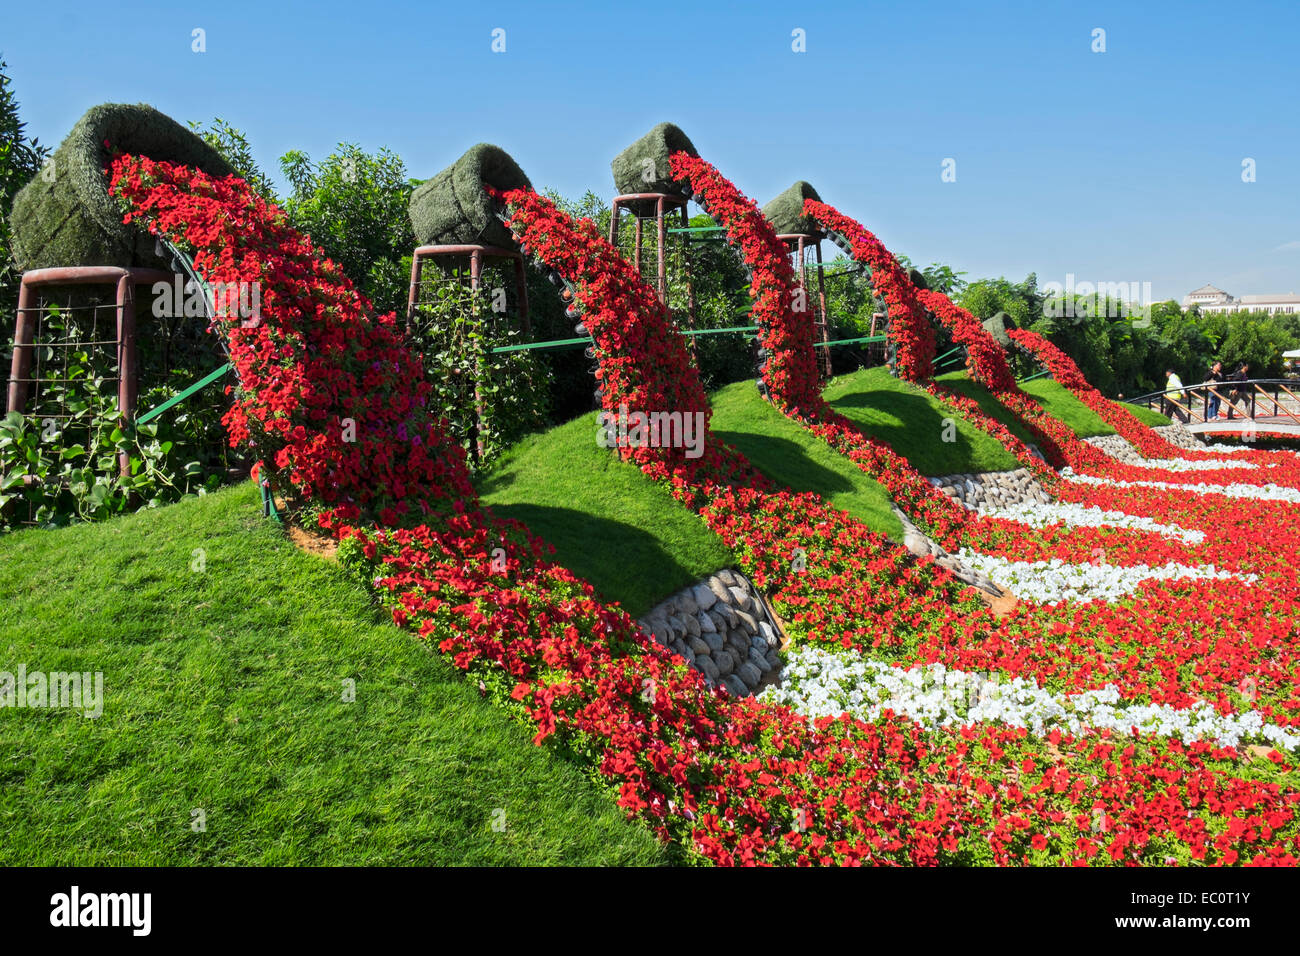 Garden And Landscaping View of flower displays and landscaping at miracle garden the stock view of flower displays and landscaping at miracle garden the worlds biggest flower garden in dubai united arab emirates workwithnaturefo